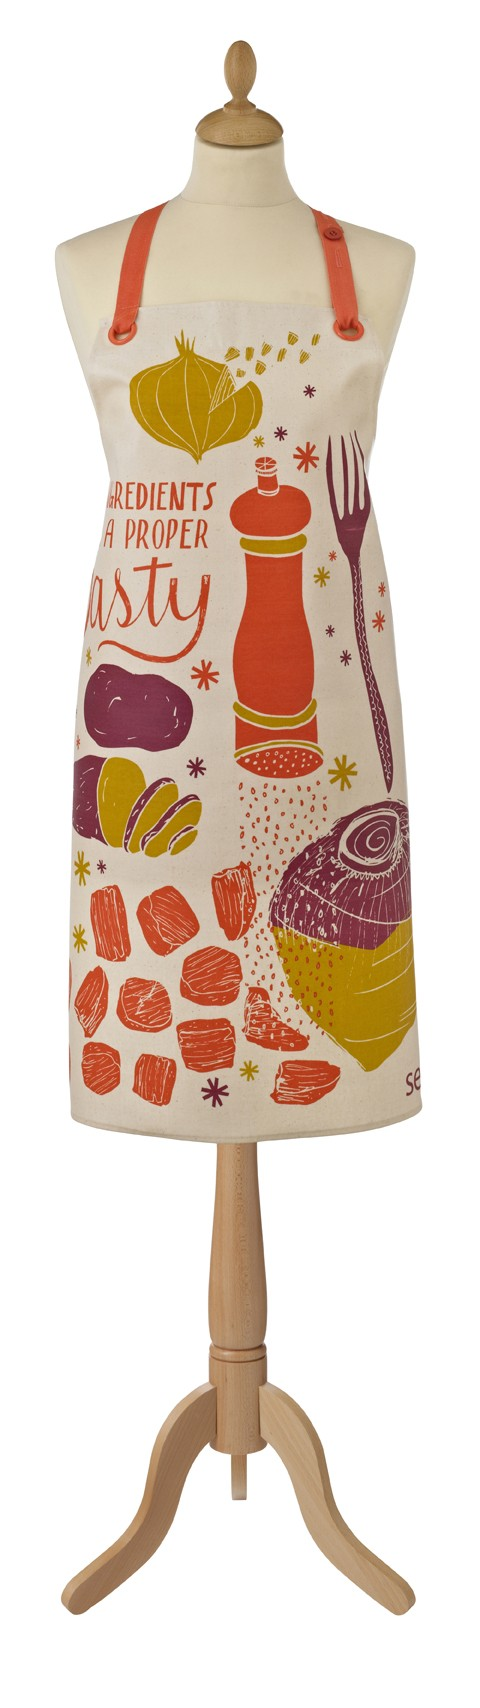 Seasalt Pasty Oil Cloth Apron, Ulster Weavers